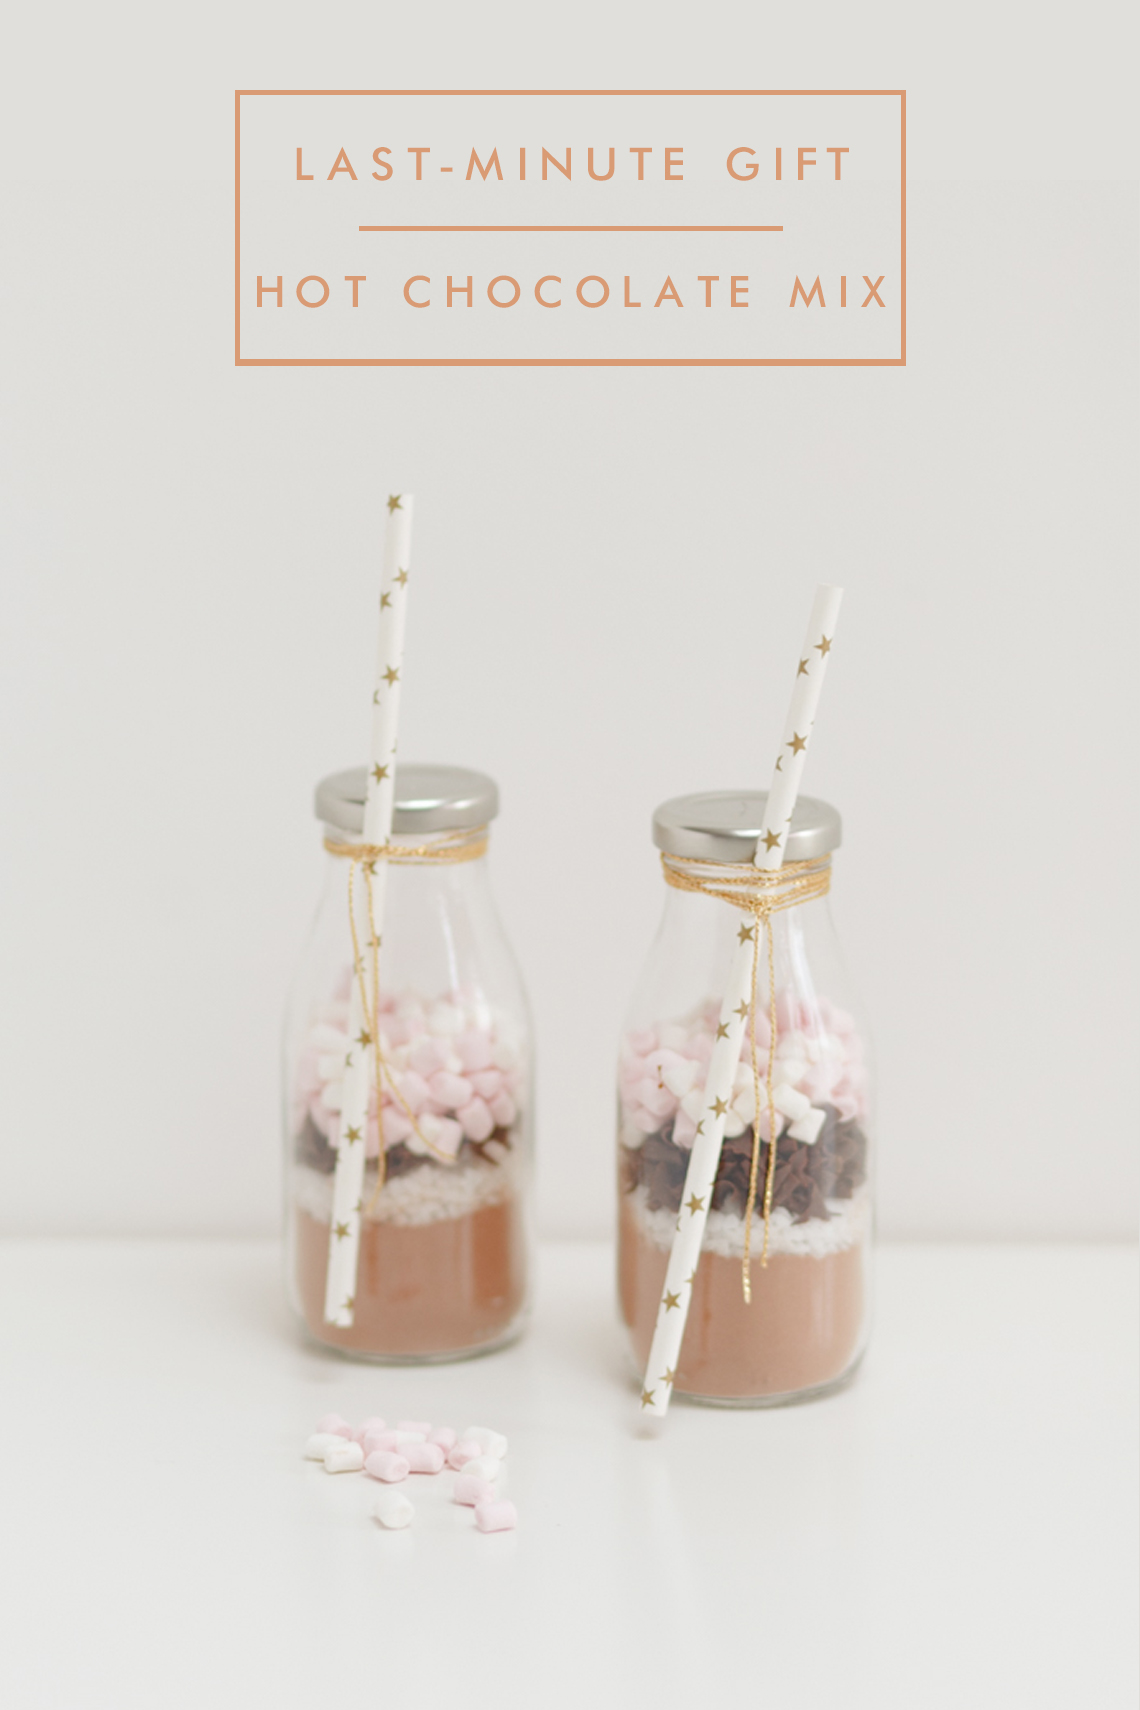 BLOVED Lifestyle Blog Christmas Gift Guide Last Minute Gifts Claire Graham Photography Hot Chocolate Mix